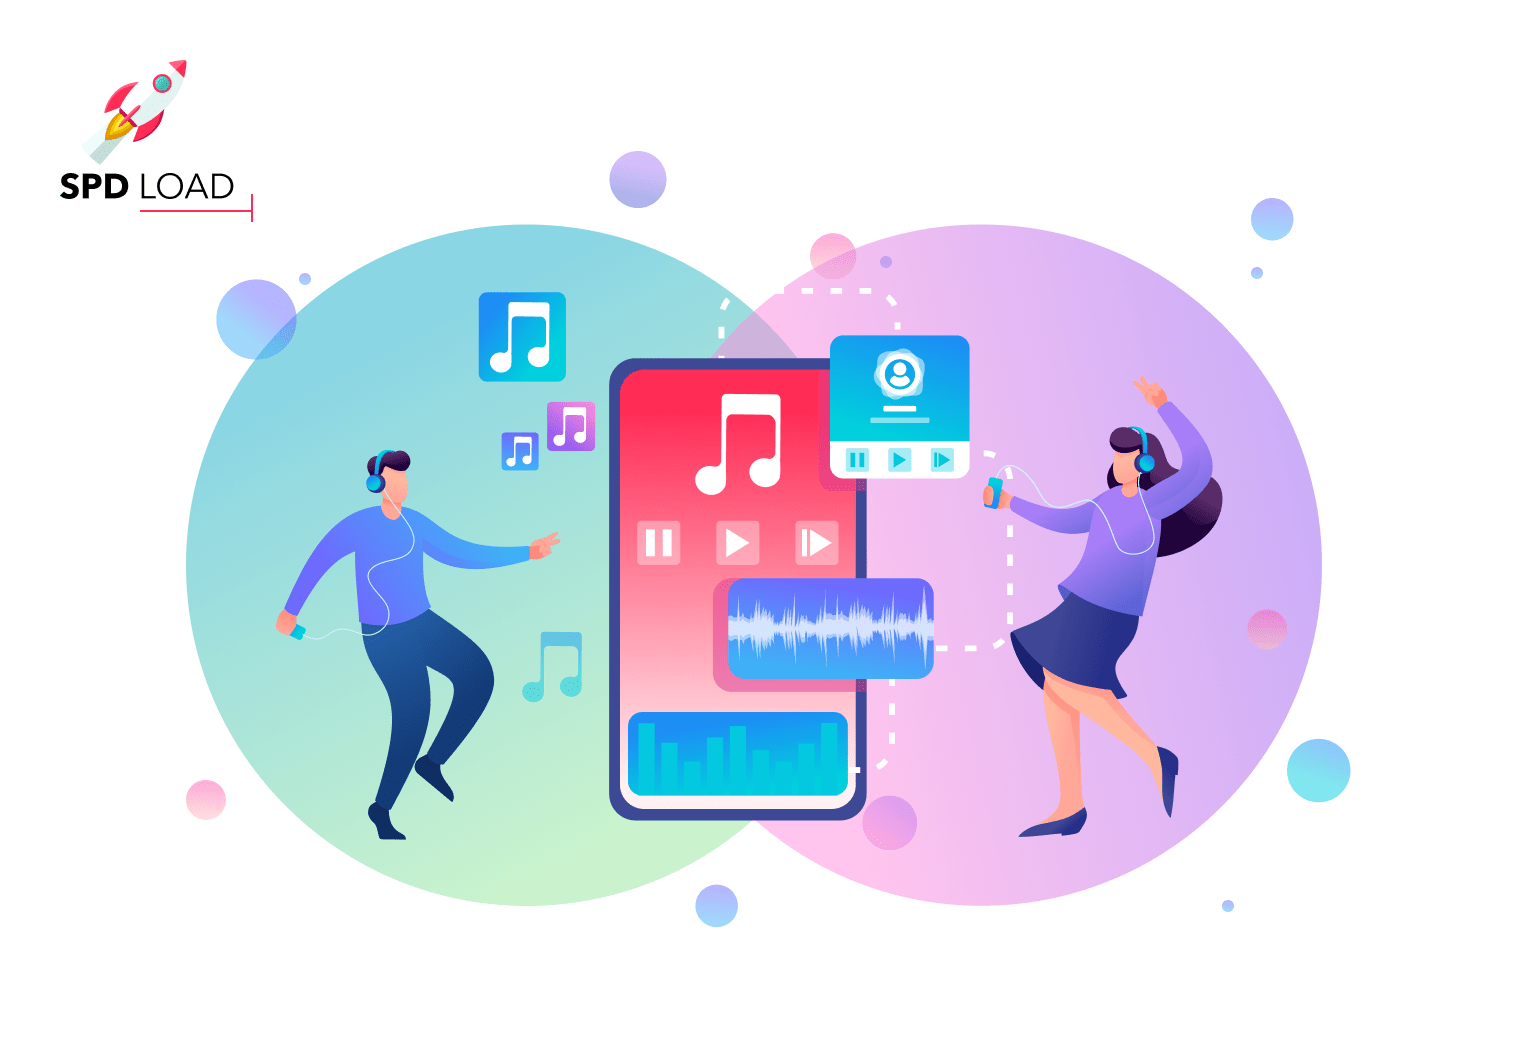 SpdLoad presented an in-depth guide on how to create a music streaming app